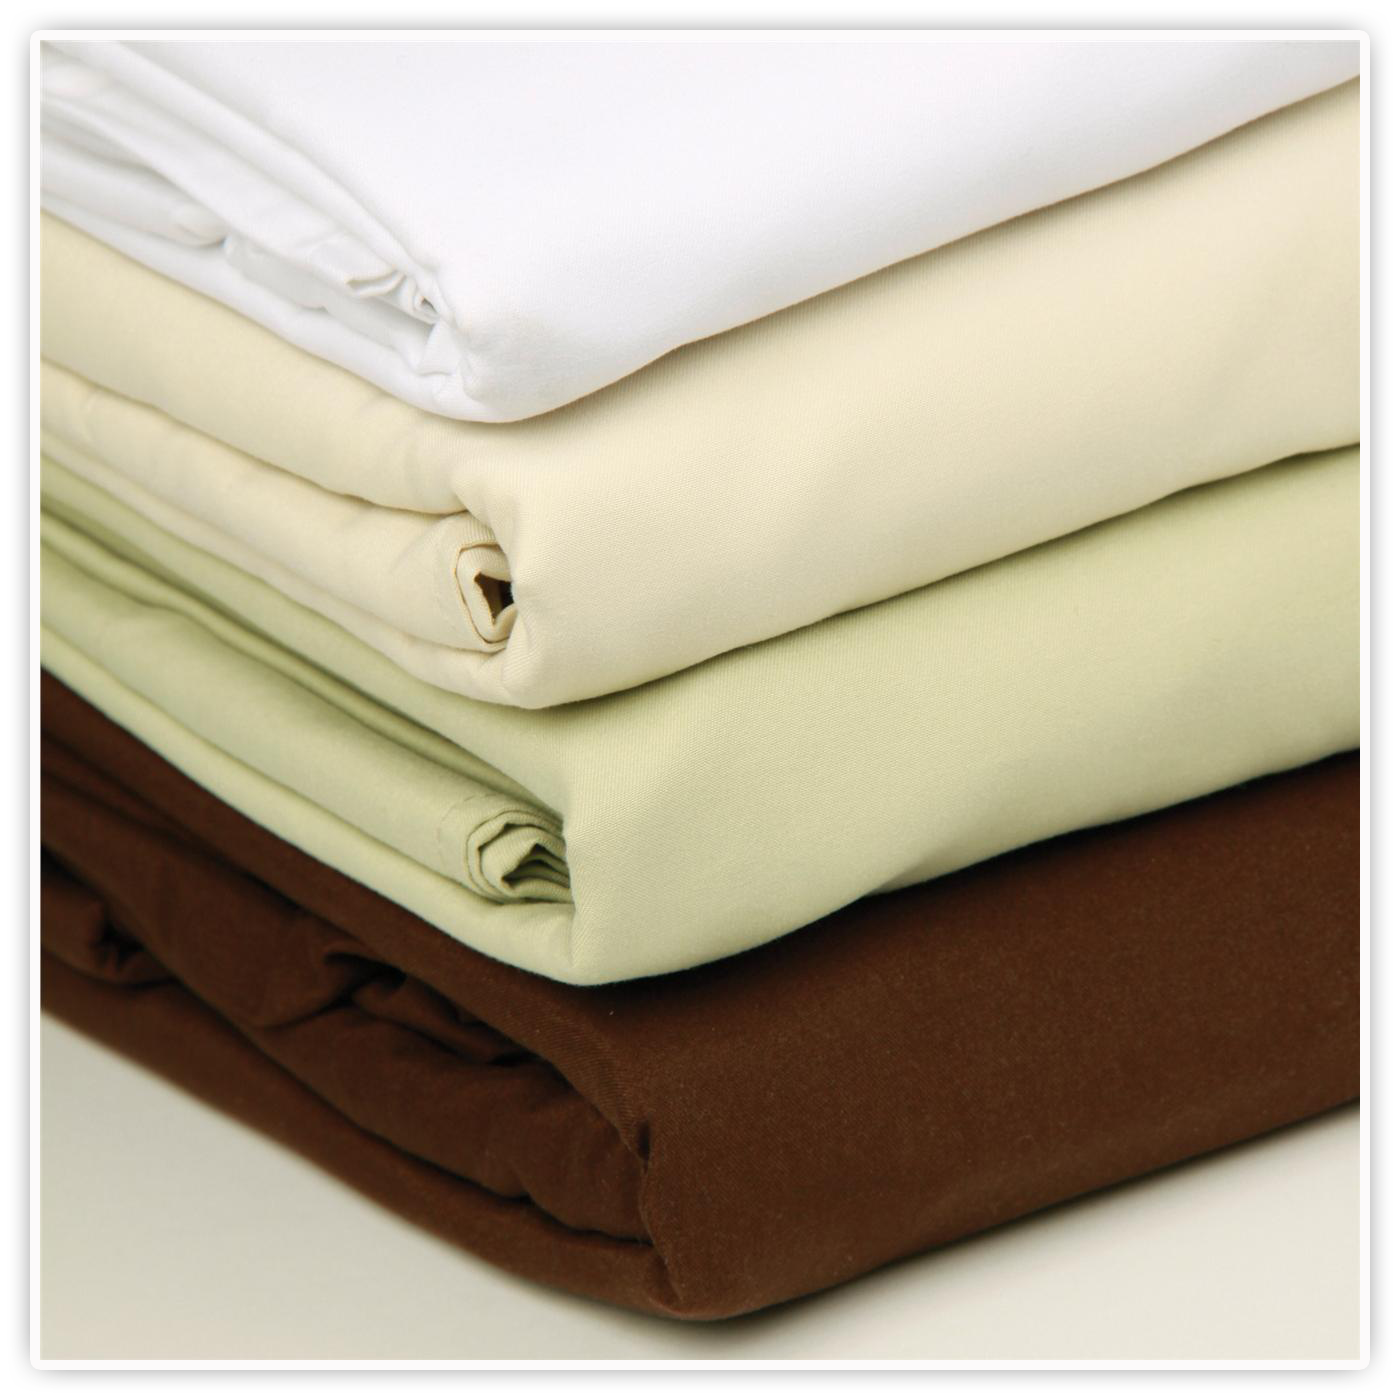 order comphy company microfiber bedding linens and sheets at elk forge